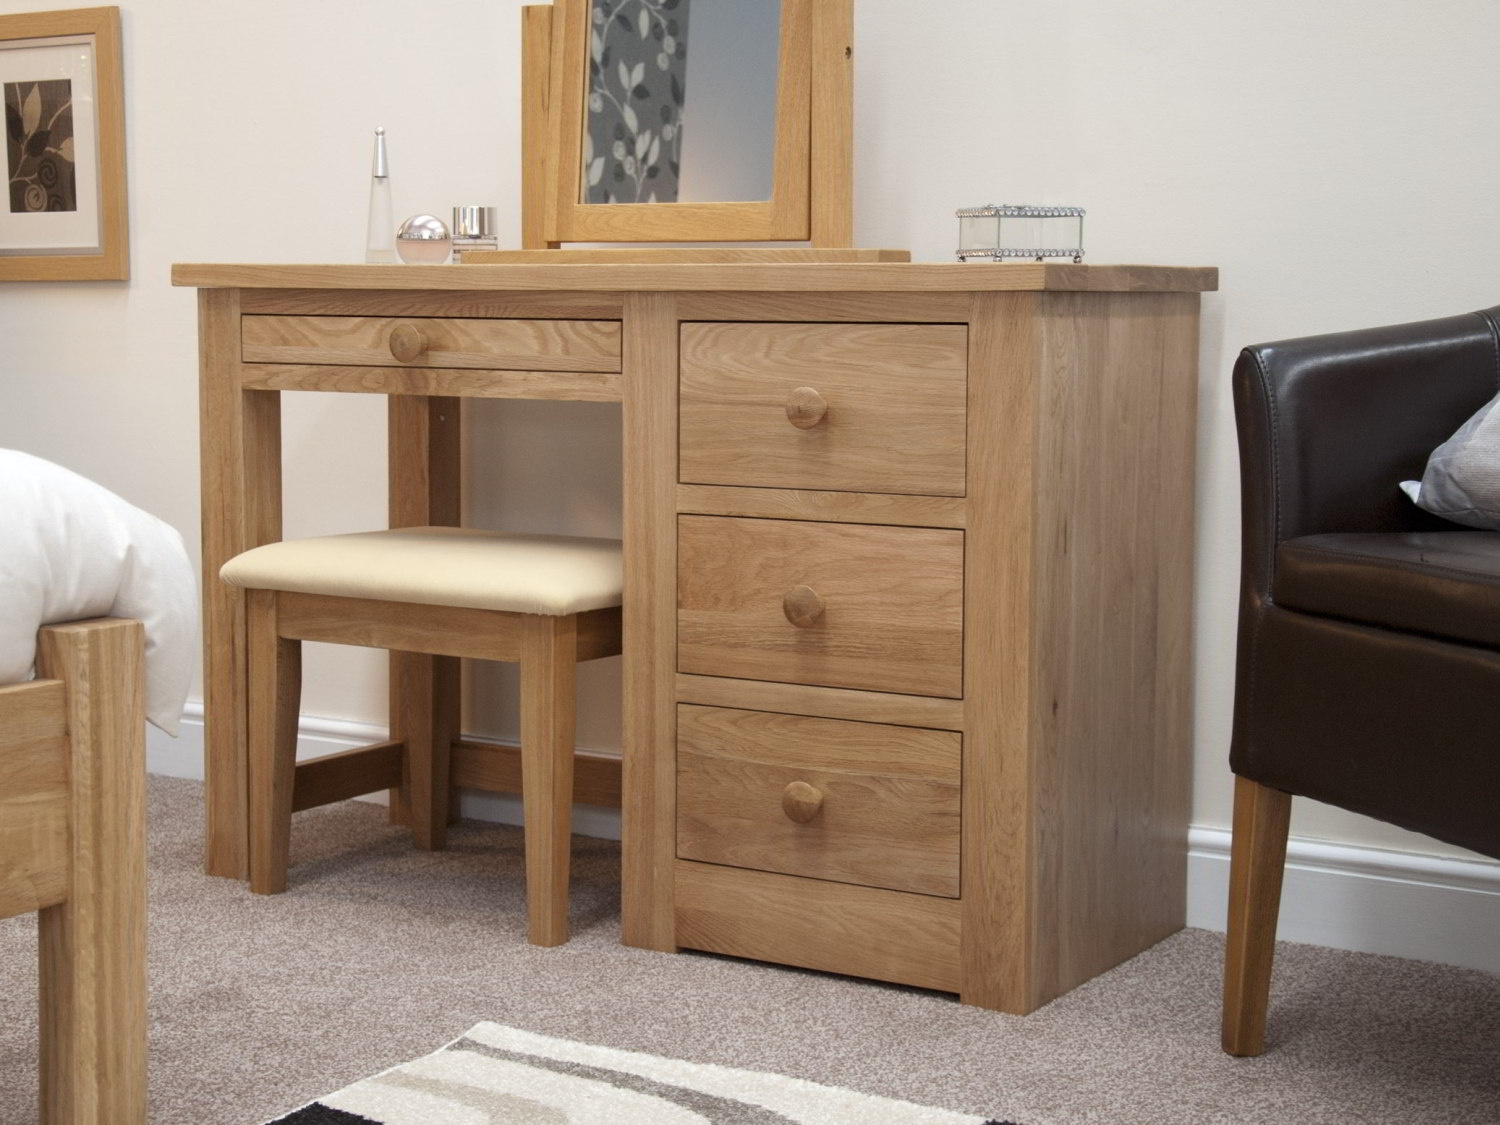 Kingston Solid Modern Oak Bedroom Furniture Dressing Table With Stool Ebay